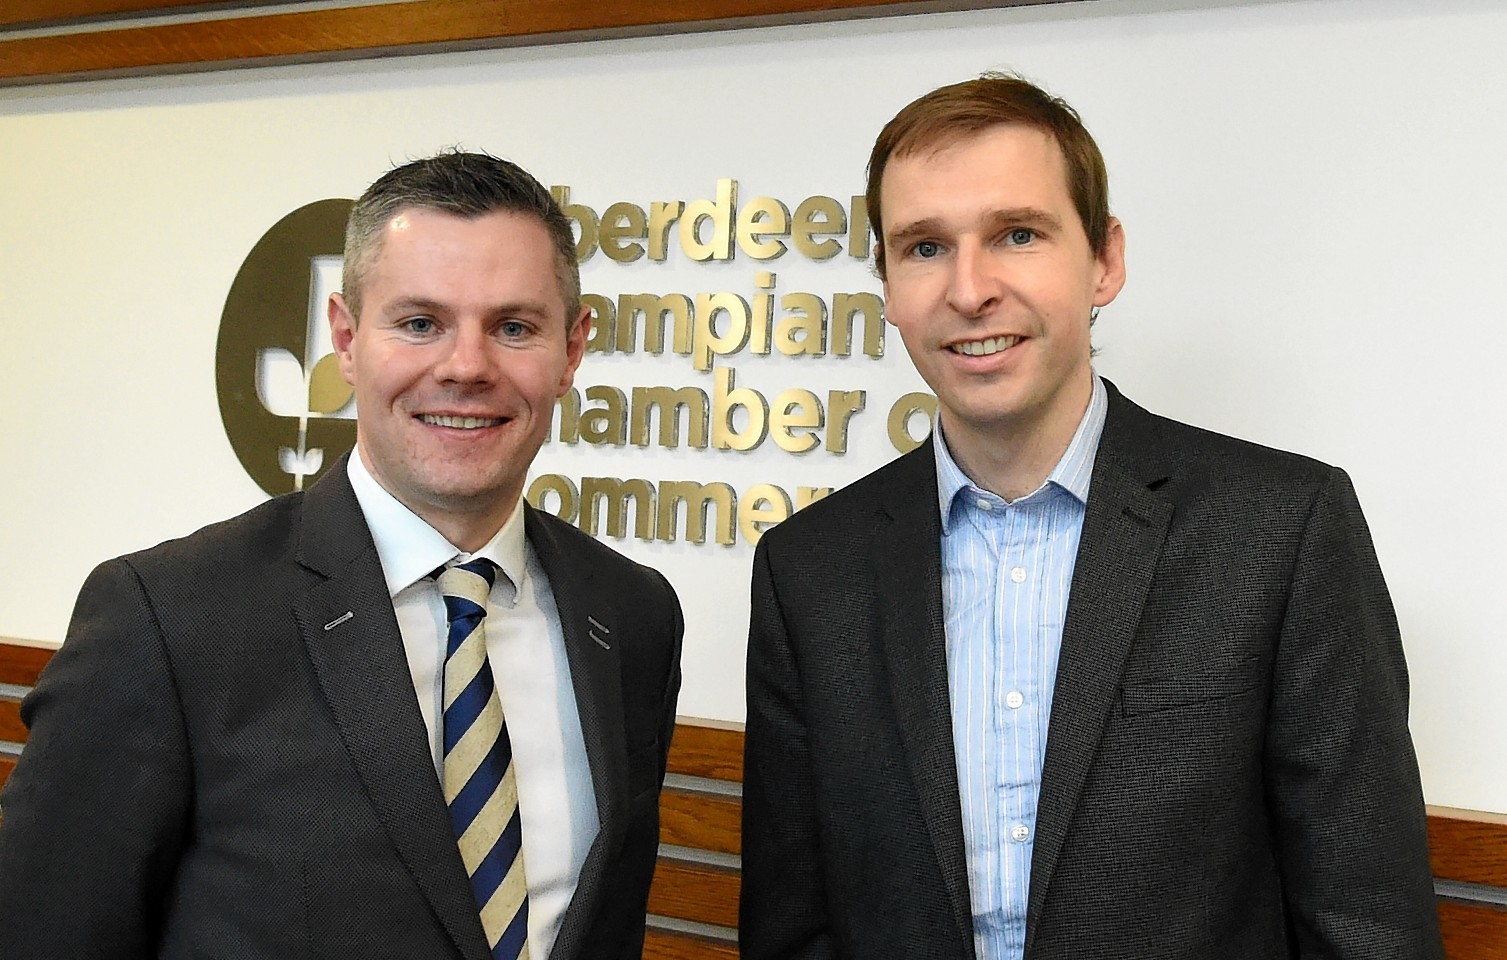 Scottish Government Finance secretary Derek Mackay and James Bream, Aberdeen and Grampian Chamber of Commerce research and policy director